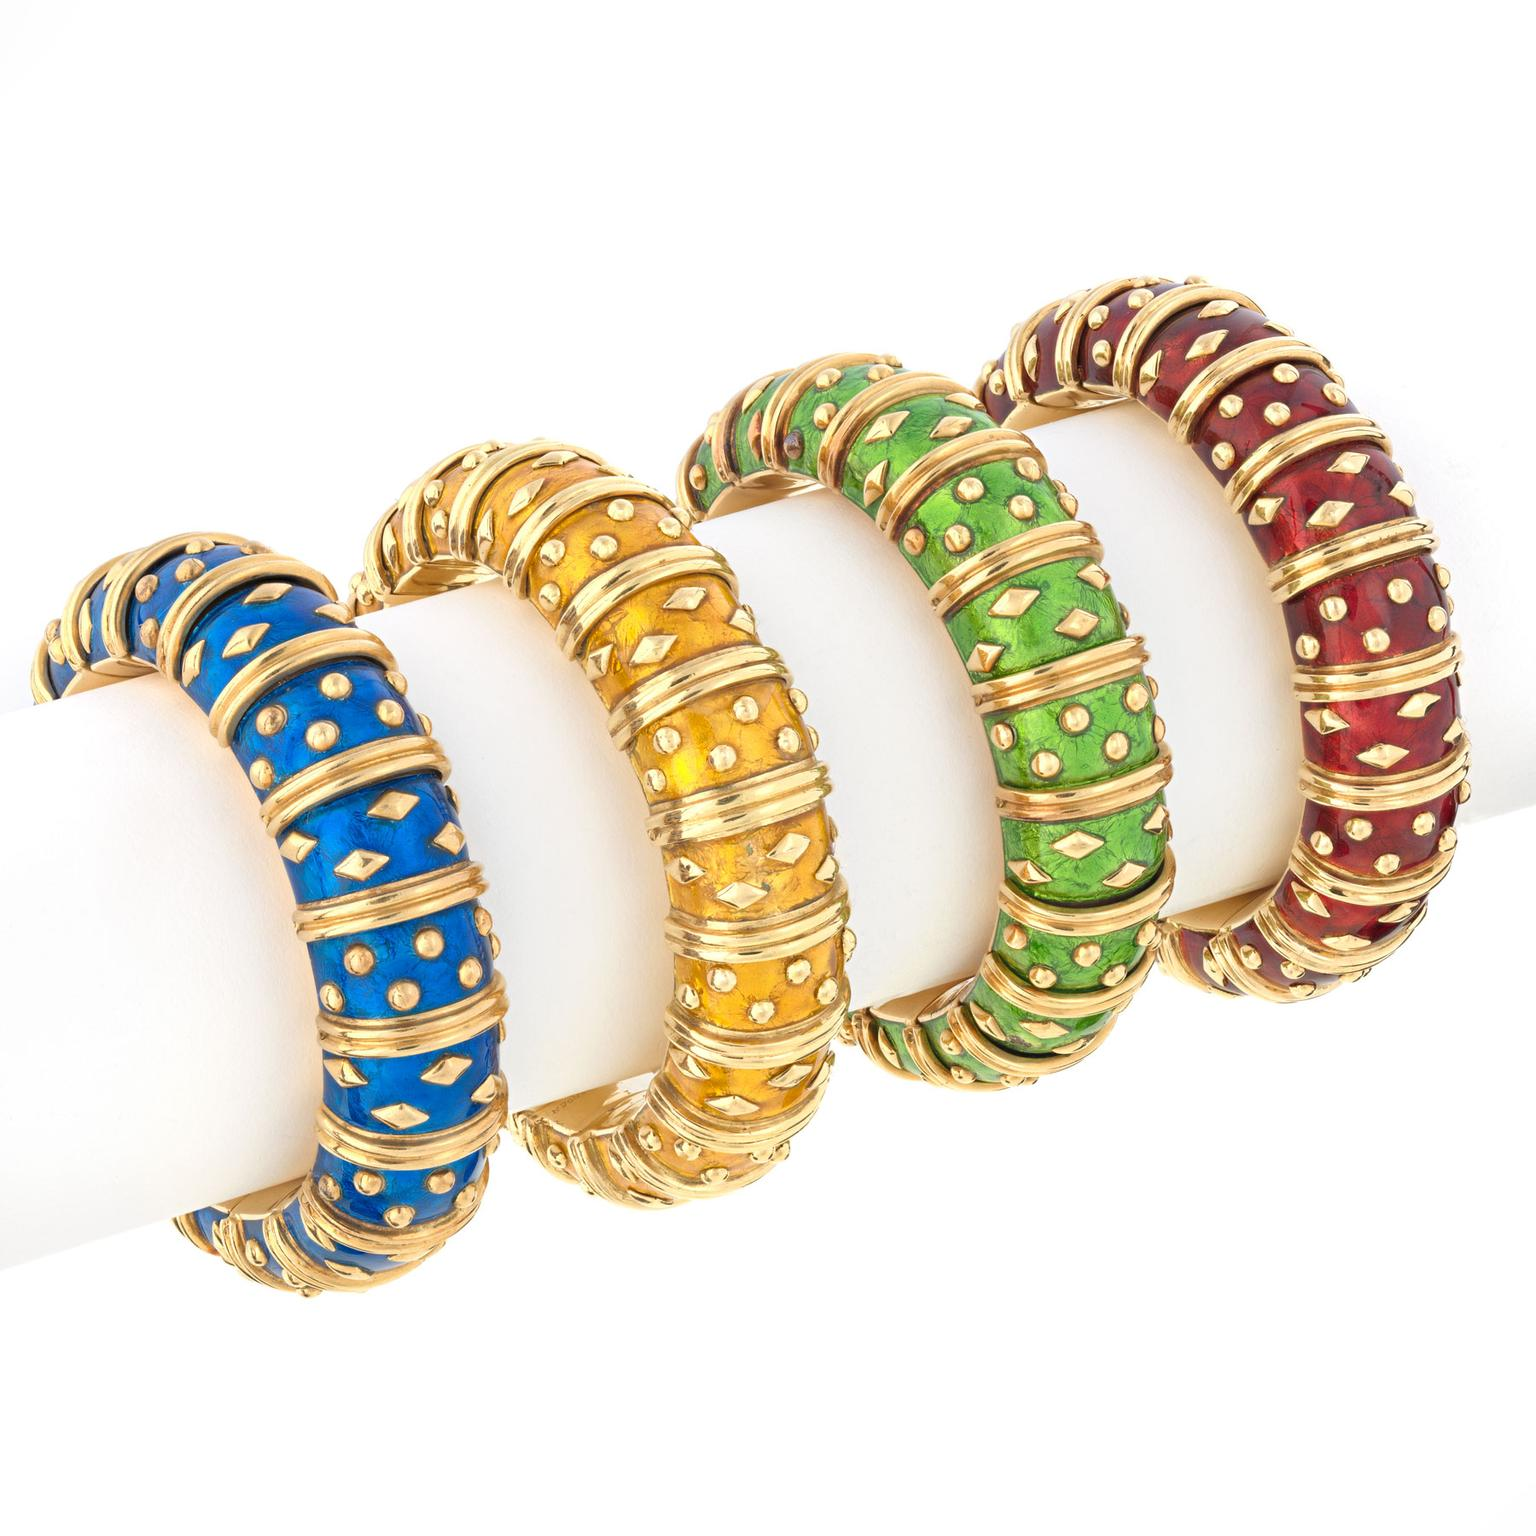 Jean Schlumberger Dot Losange bracelets for Tiffany & Co.